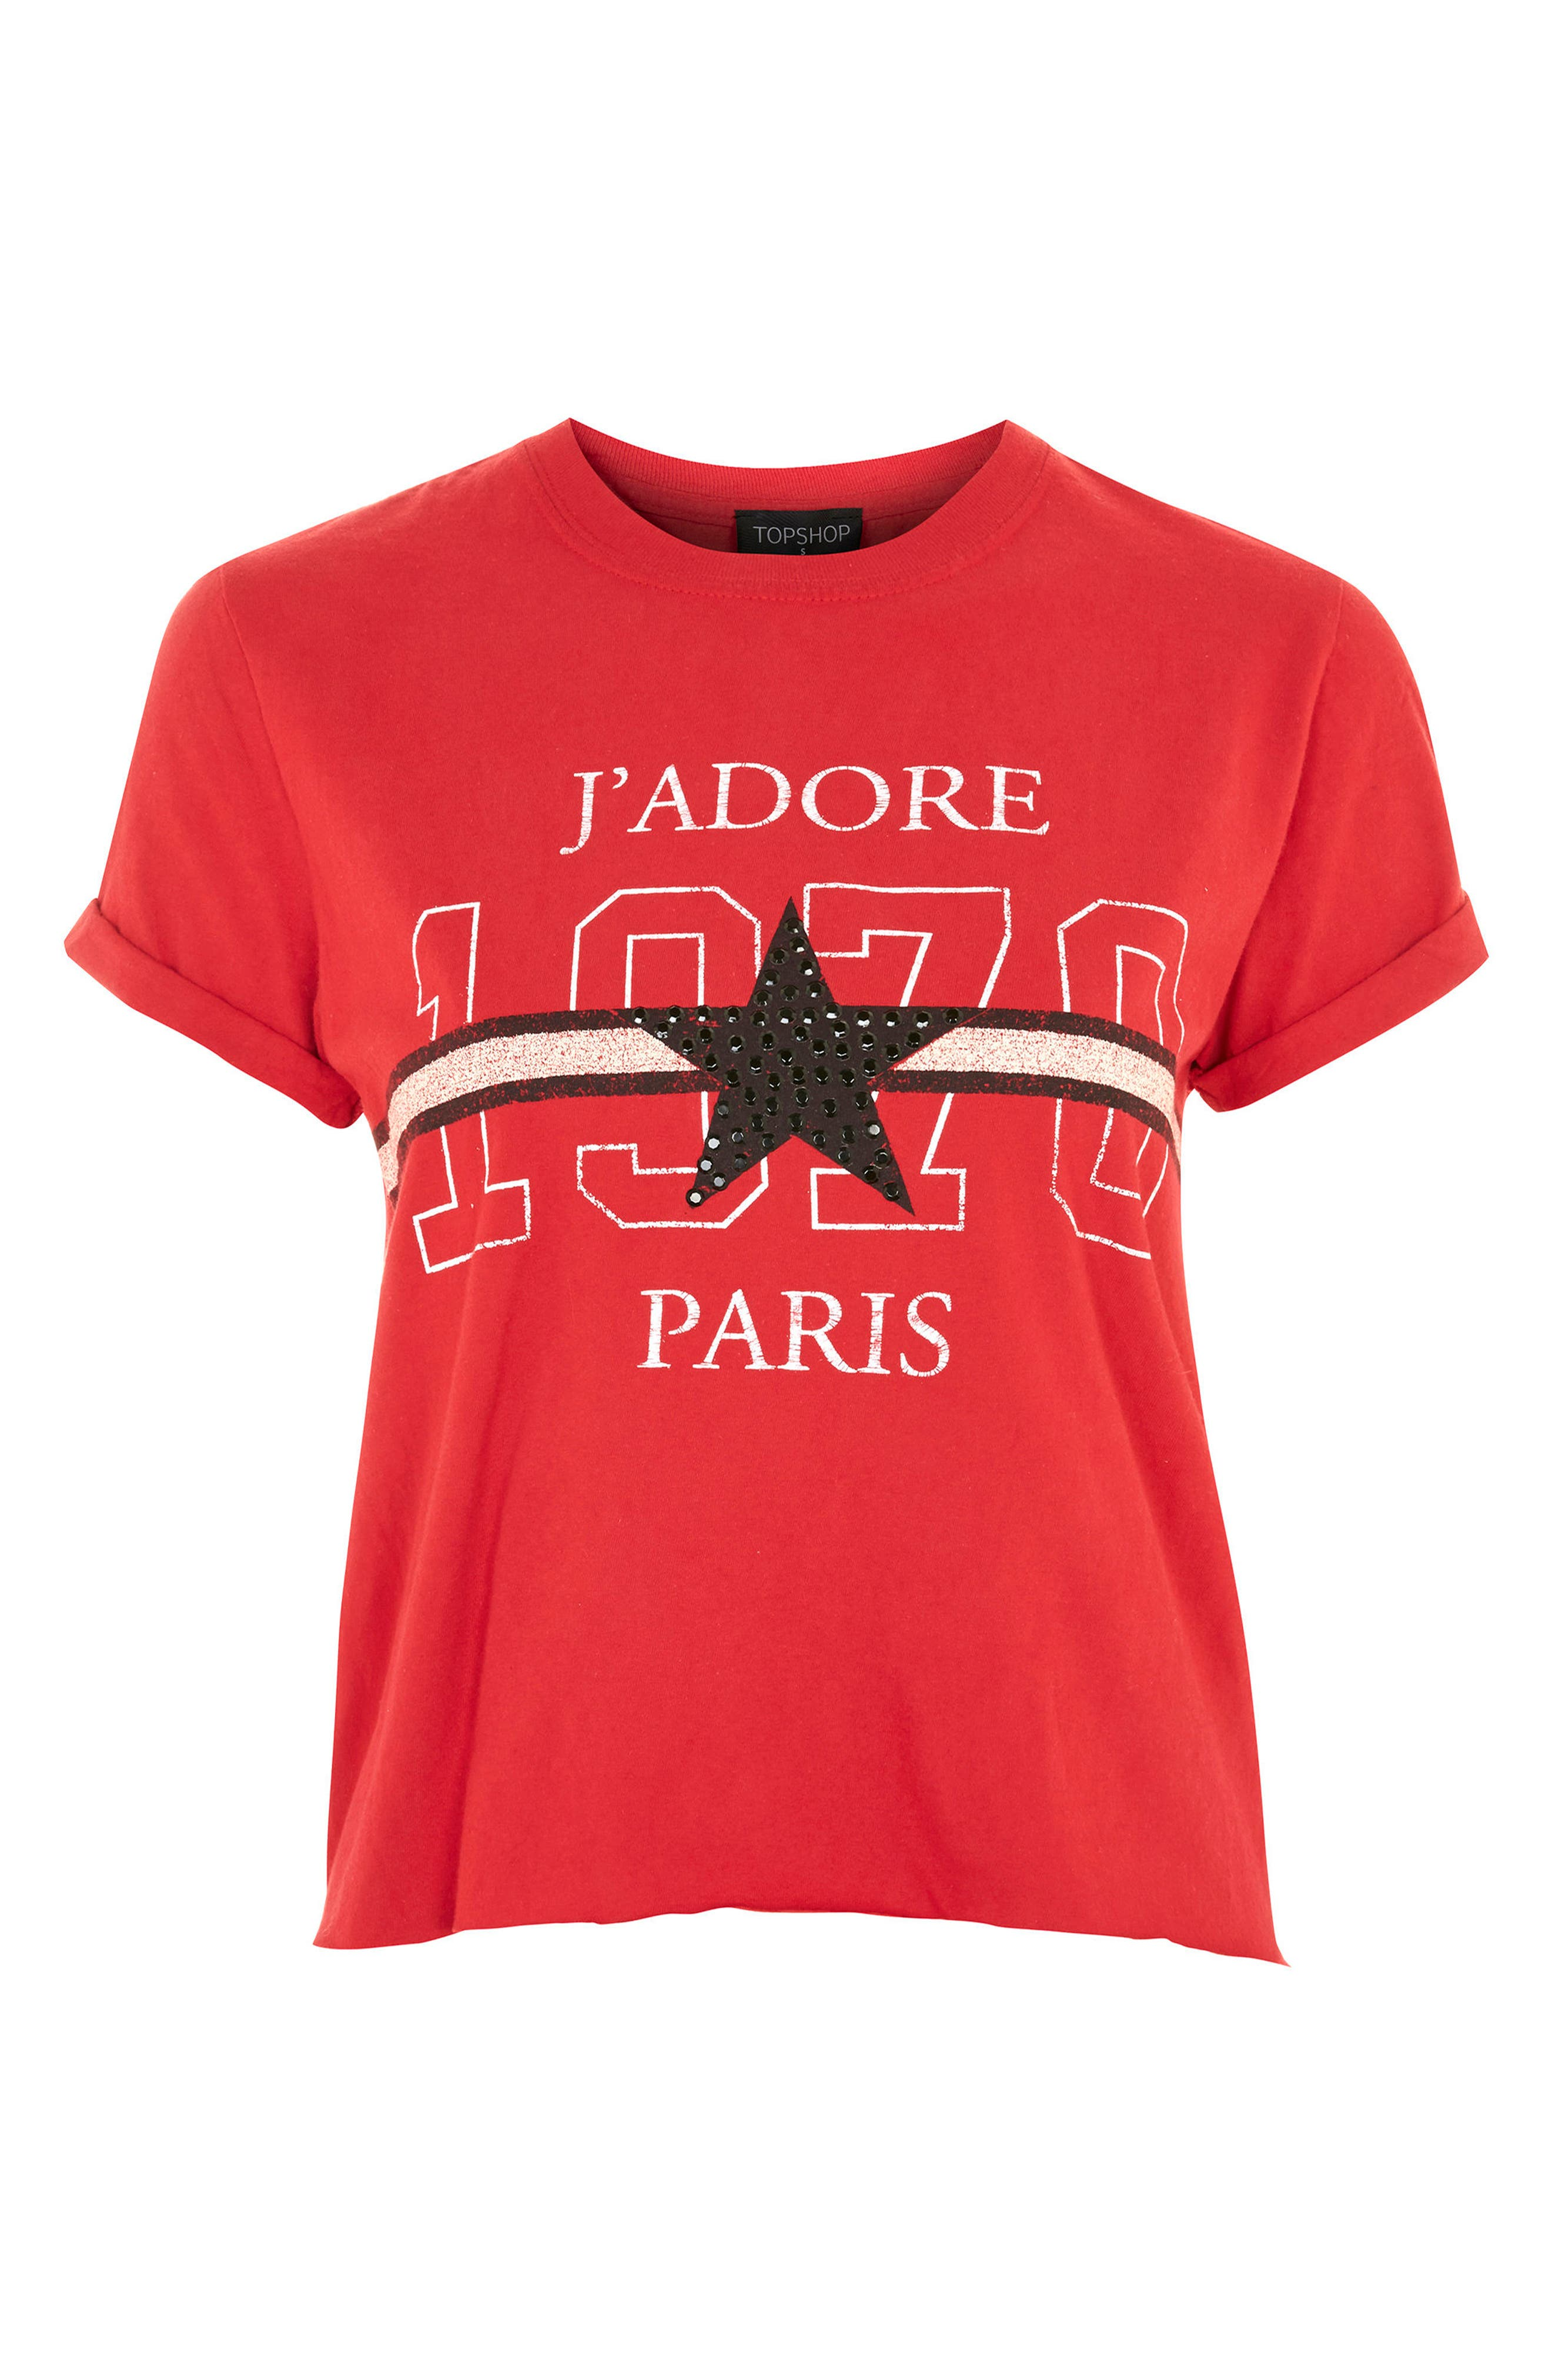 J'Adore Studded Crop T-Shirt,                             Alternate thumbnail 3, color,                             600